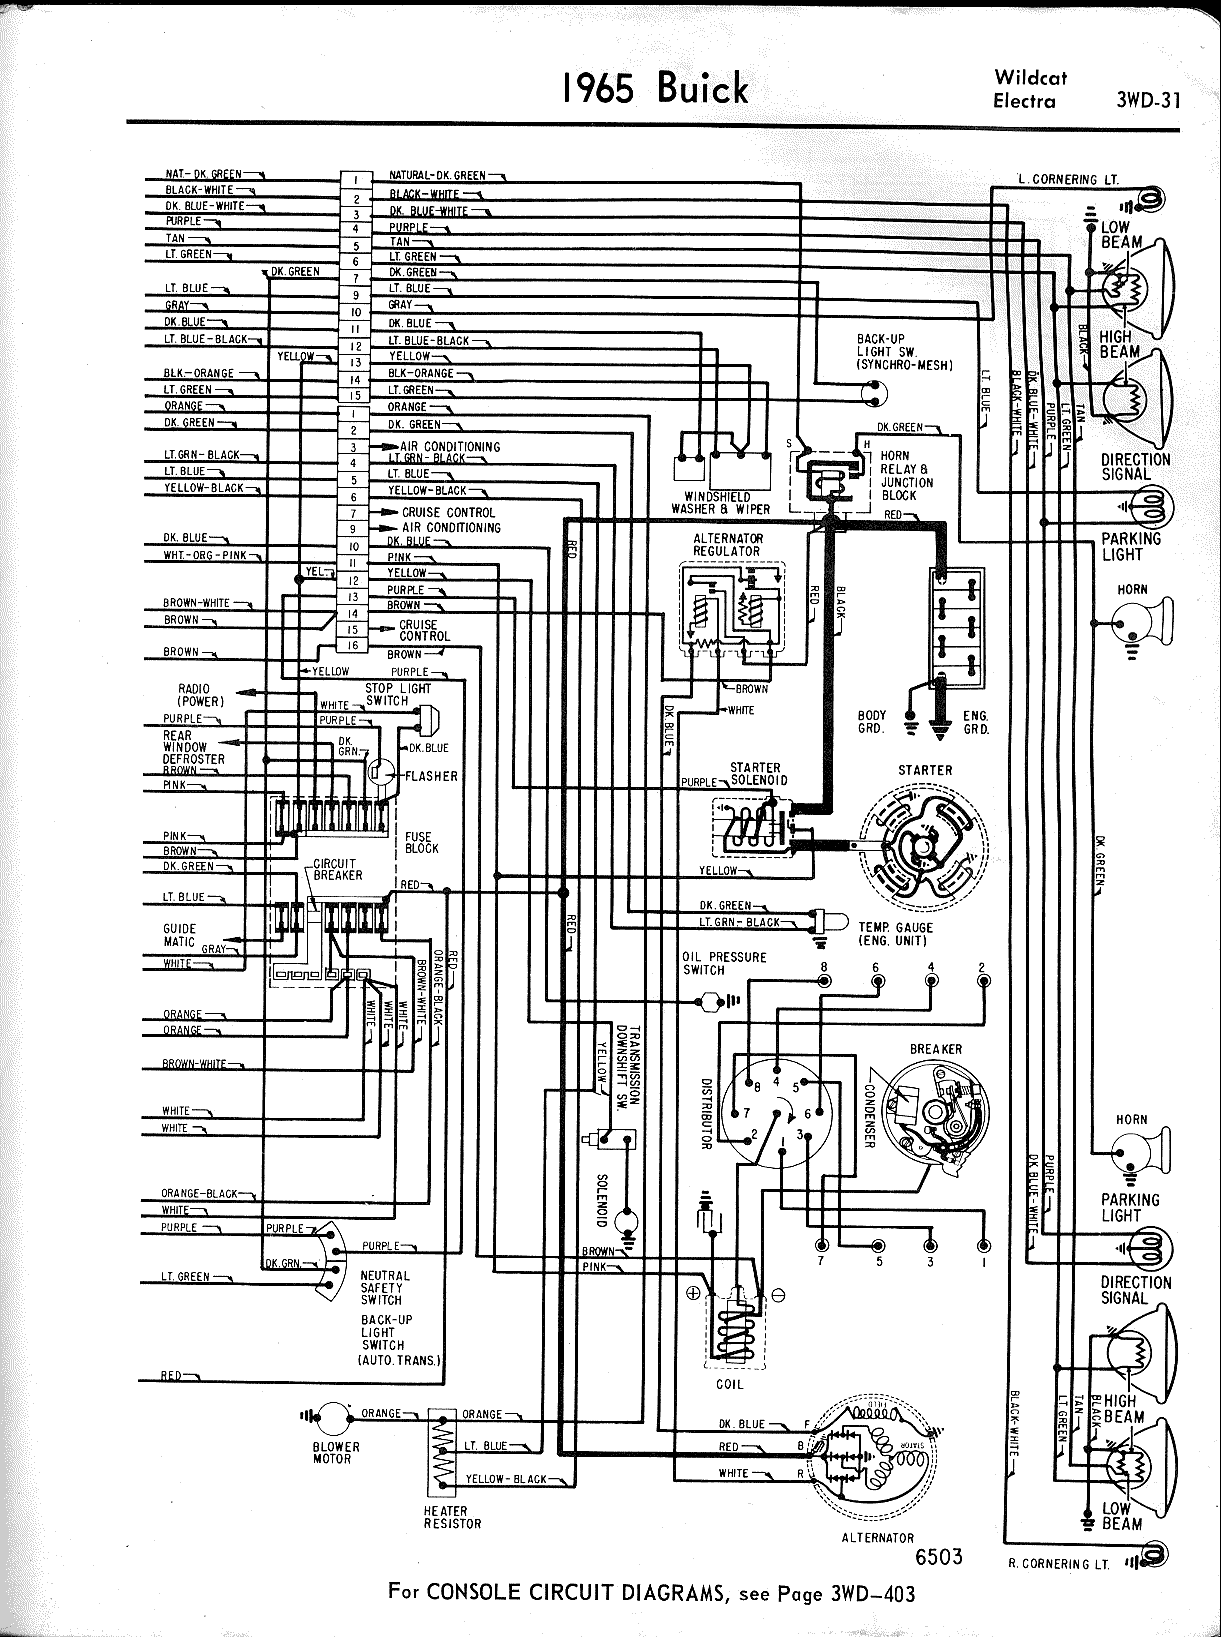 buick electra wiring diagram online schematic diagram u2022 rh holyoak co 1964 buick skylark wiring harness 1972 buick skylark wiring harness